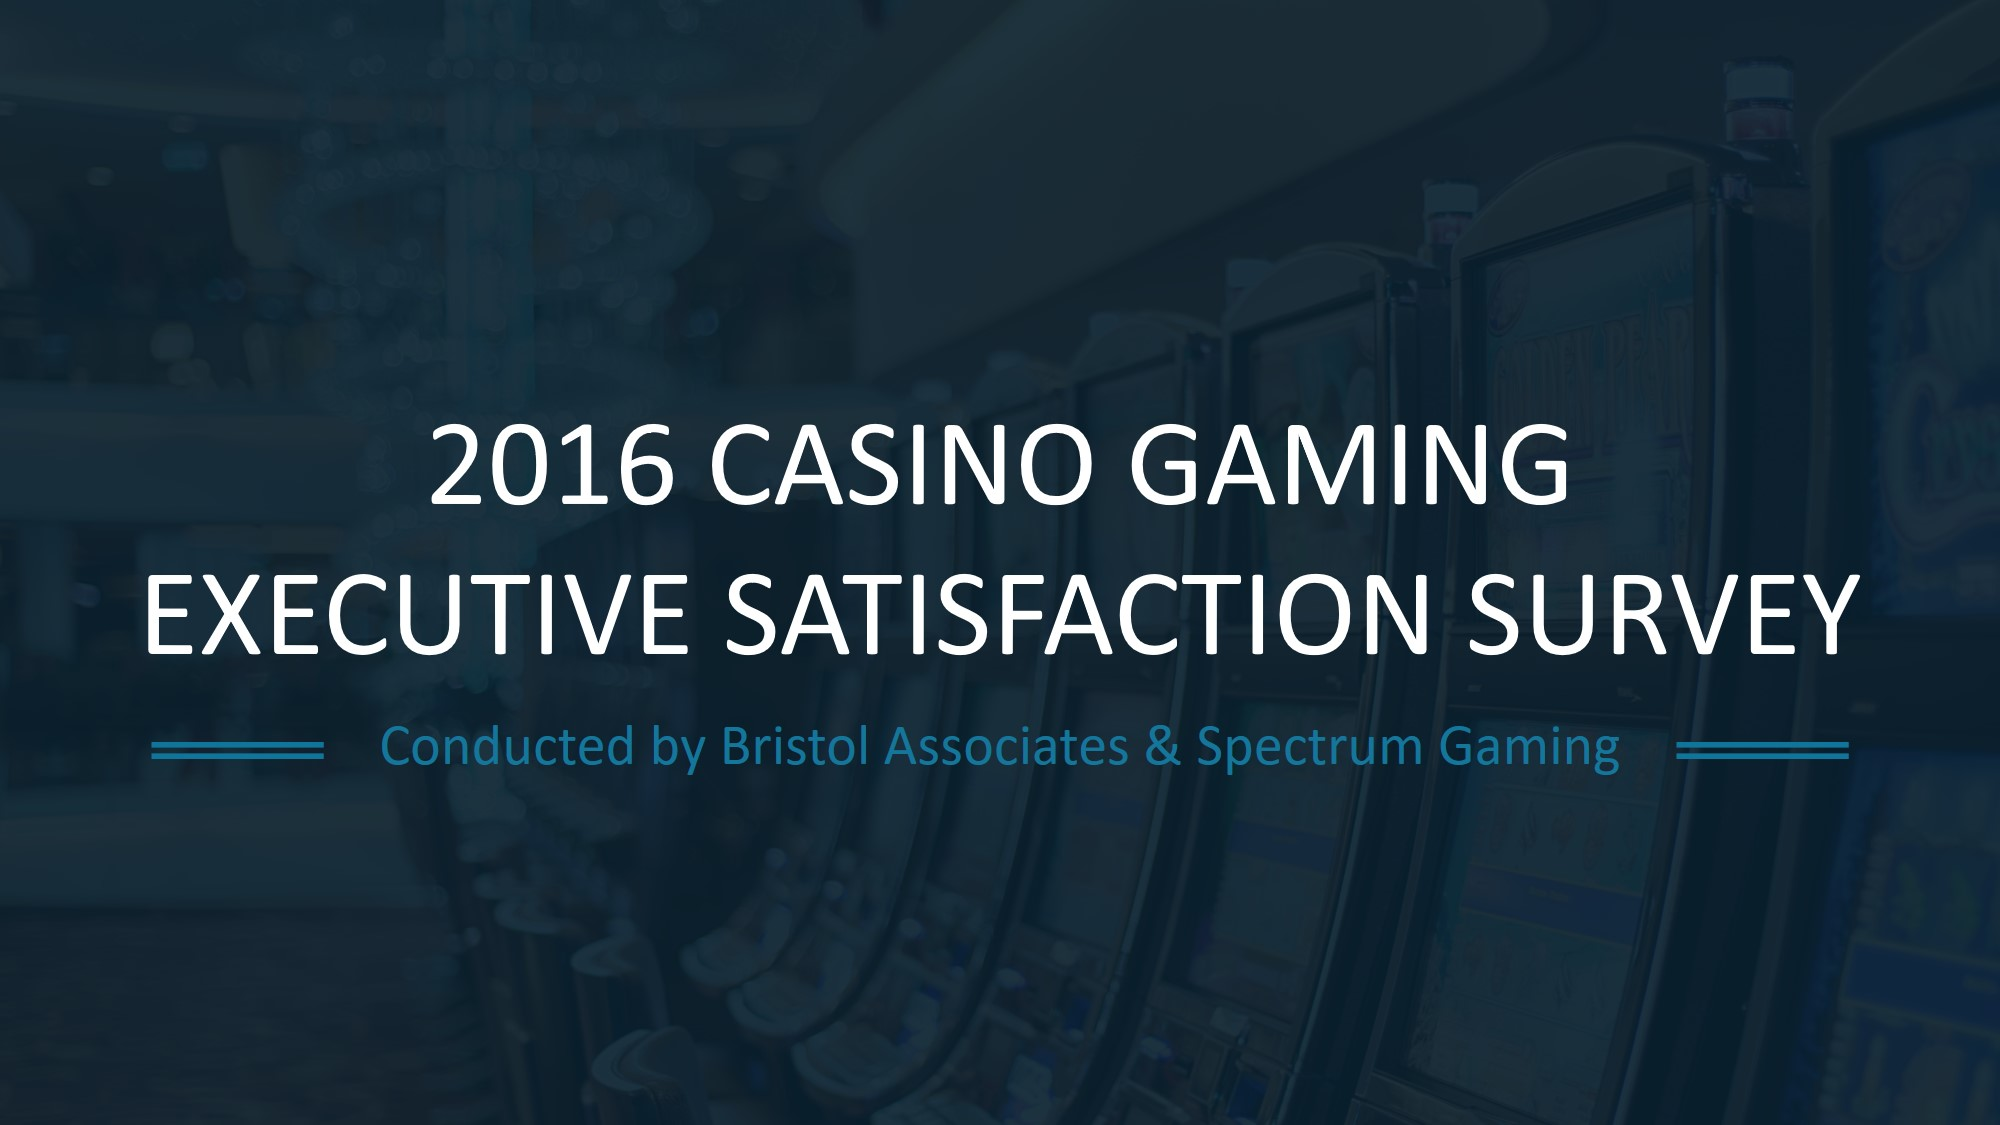 2016 Casino Gaming Executive Satisfaction Survey